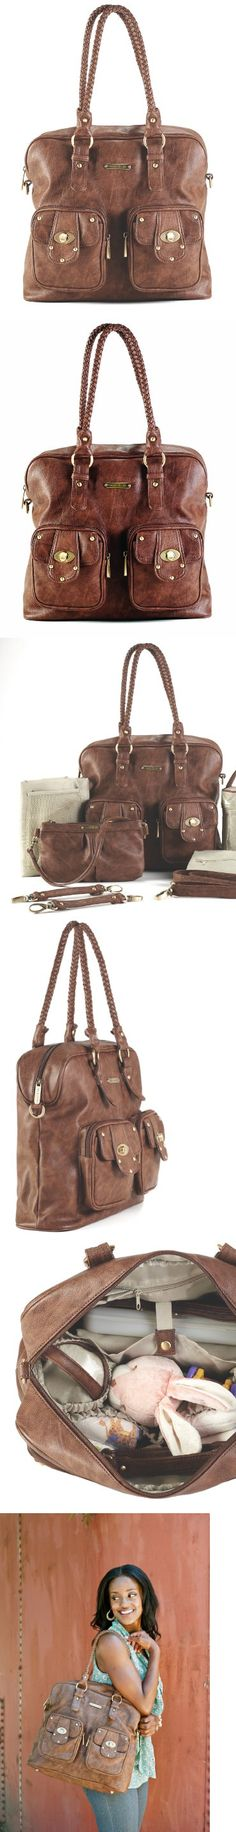 timi & leslie Rachel Diaper Bag, Caramel, The Rachel Bag is as scrumptious as a cupcake. It's made from easy to clean faux leather (PVC free) and features our custom hardware in an antique brass finish. Rachel comes with many functional and f..., #Baby, #Diaper Bags,